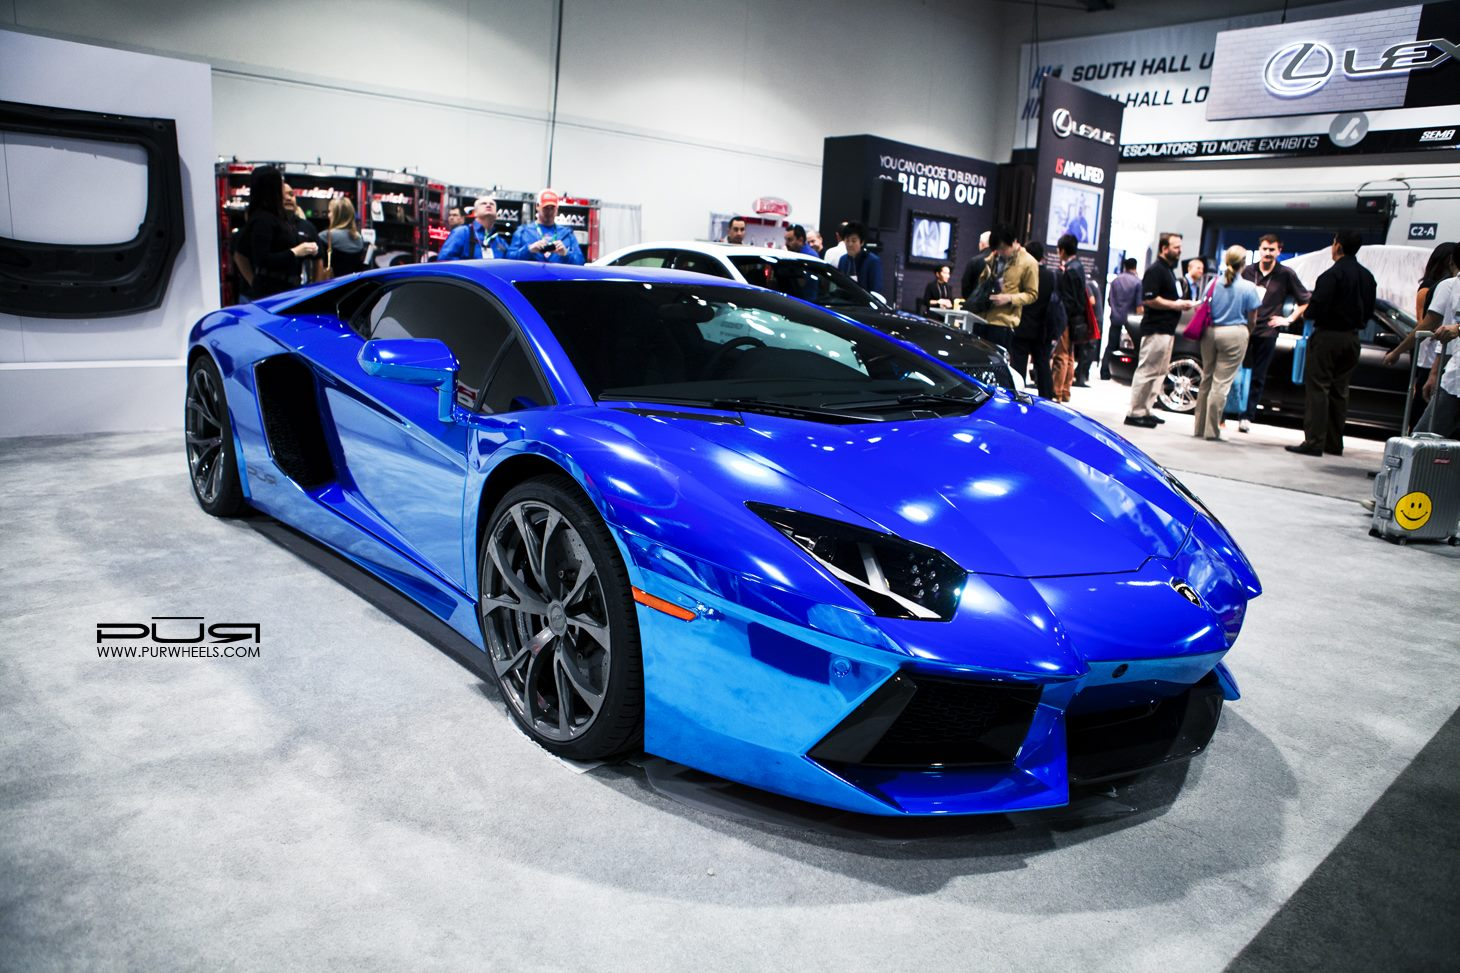 Sema 2013 Chrome Blue Lamborghini Aventador On Pur Wheels